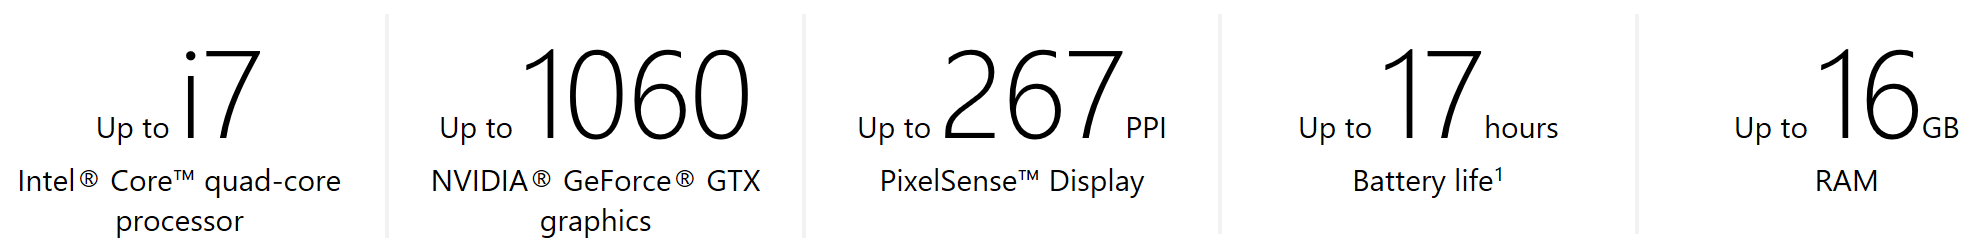 SurfaceBook2-Specs.PNG